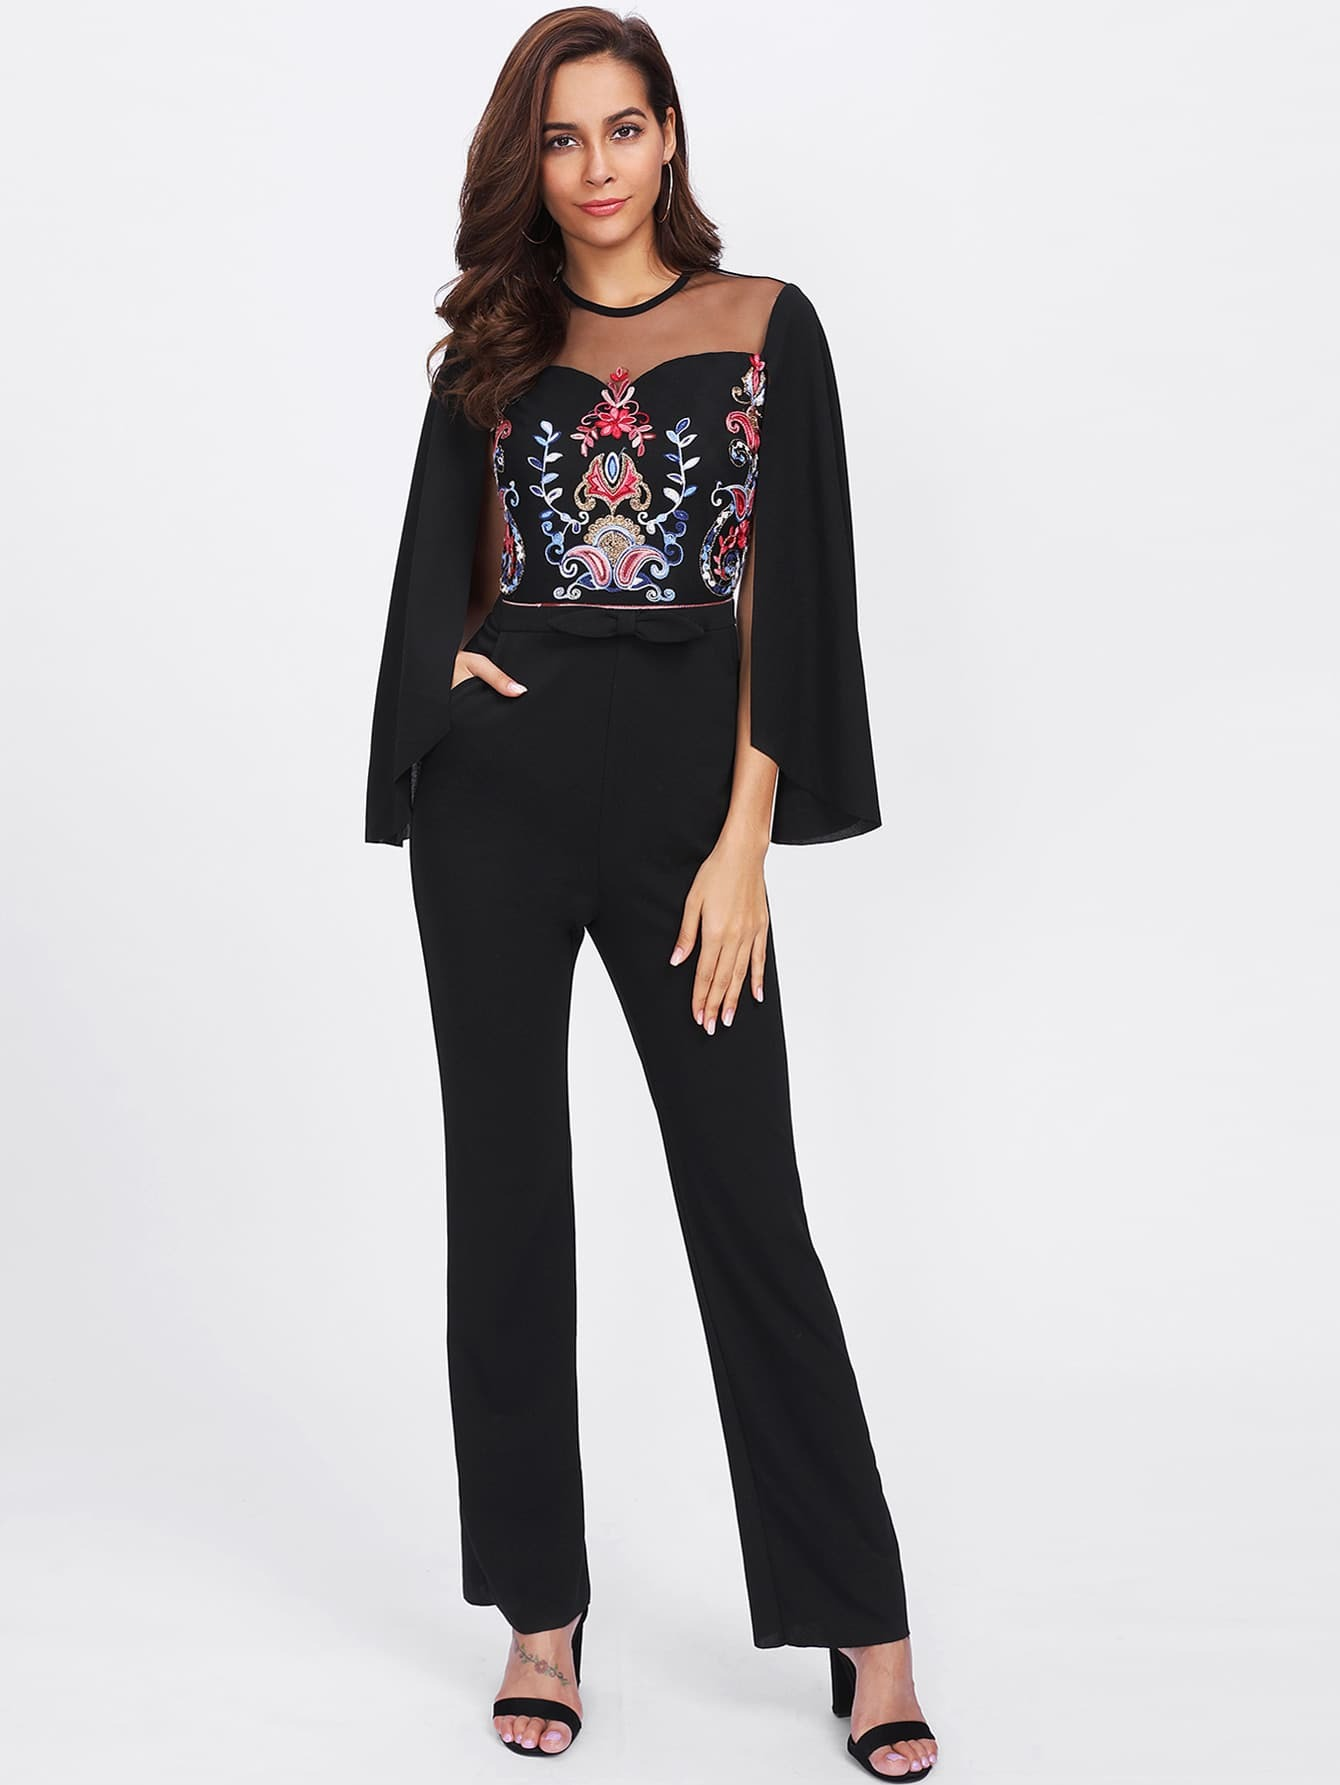 Cape Sleeve Mesh Insert Embroidered Tailored Jumpsuit mesh insert jumpsuit